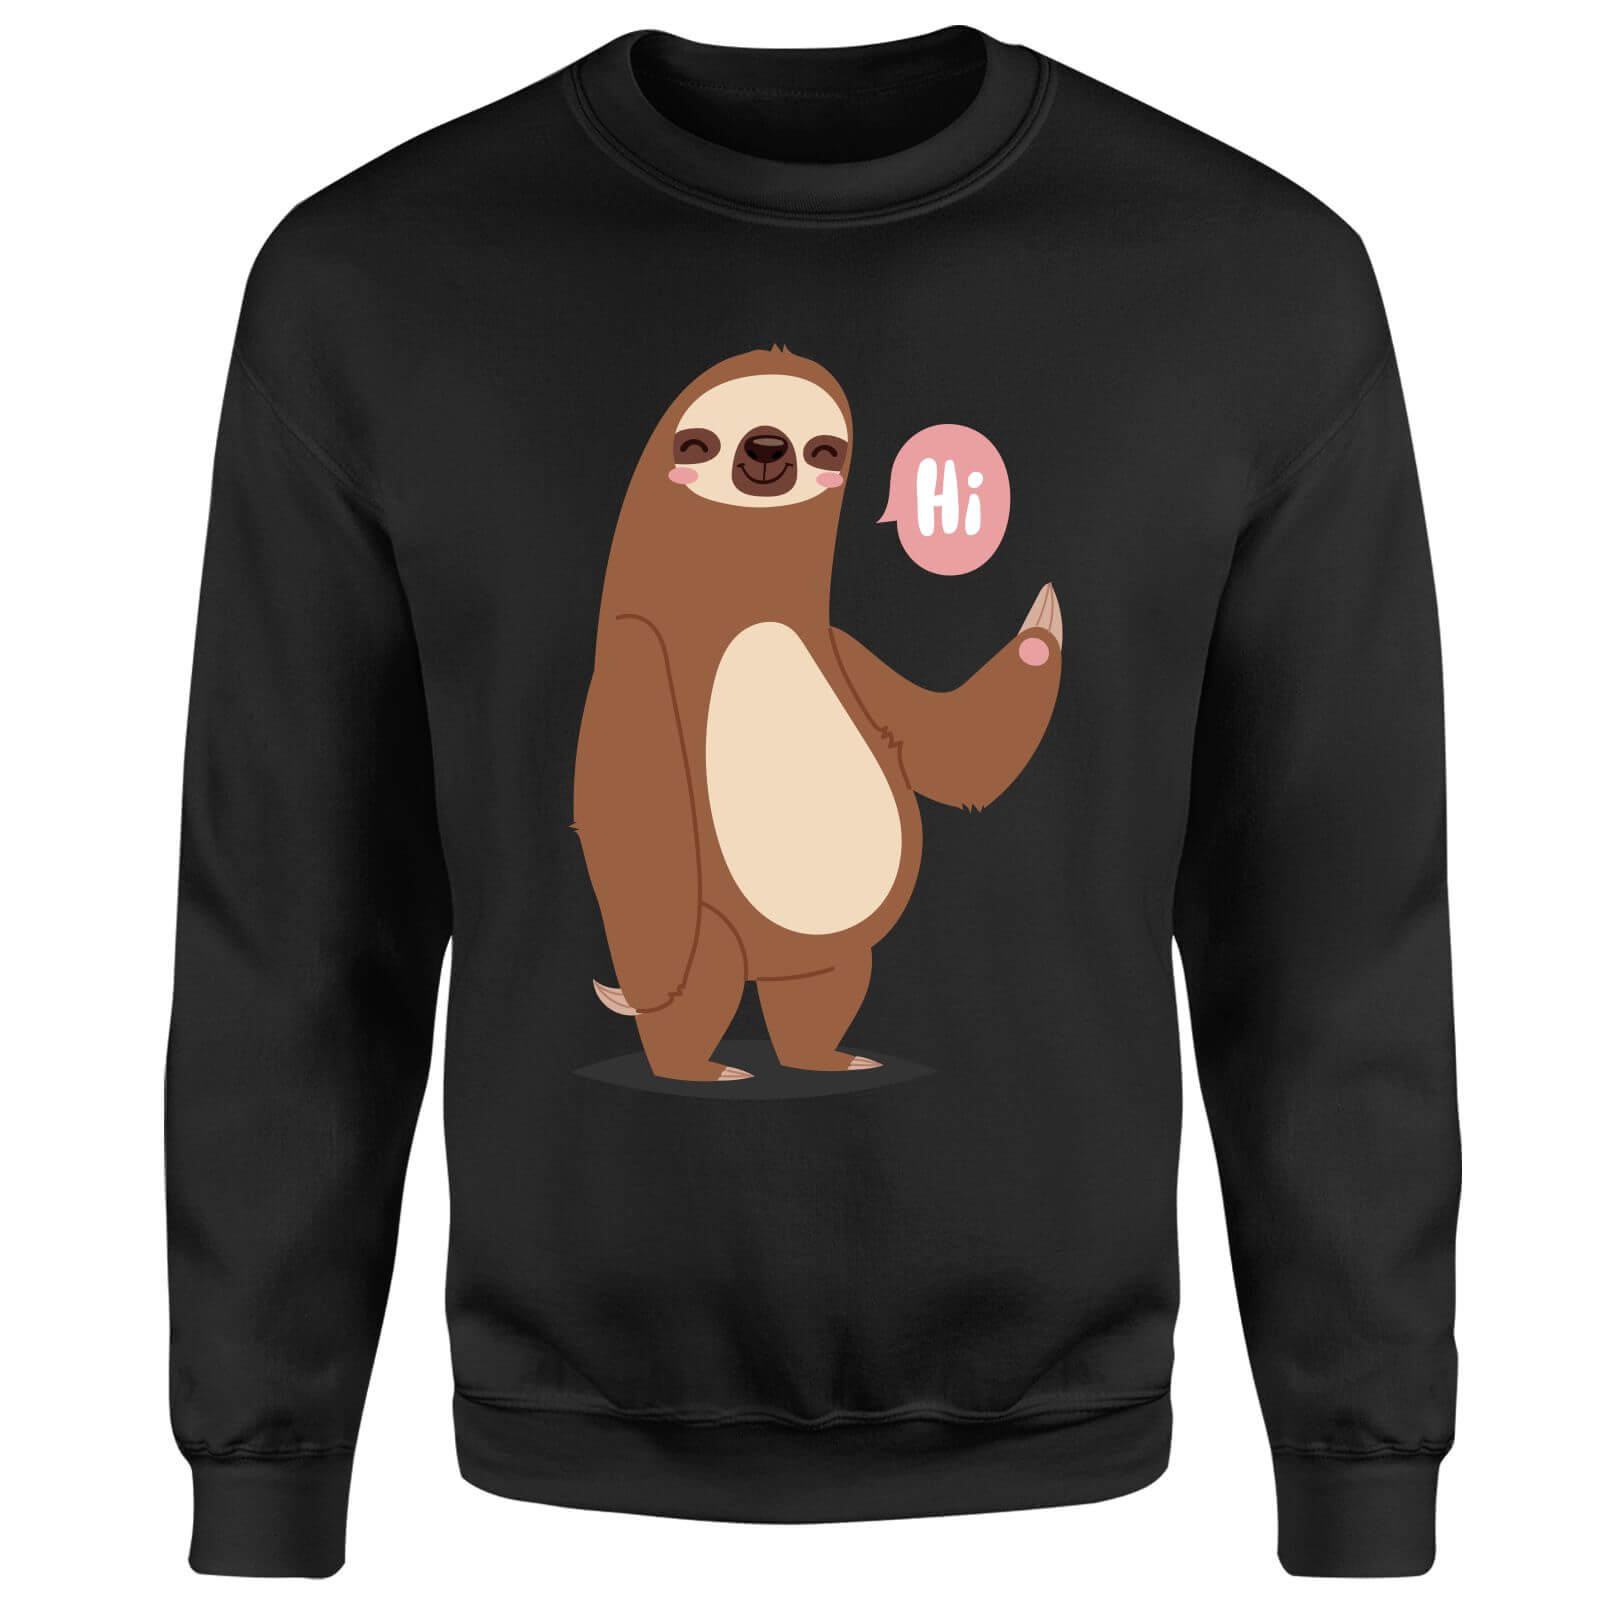 Sloth Hi Sweatshirt - Black